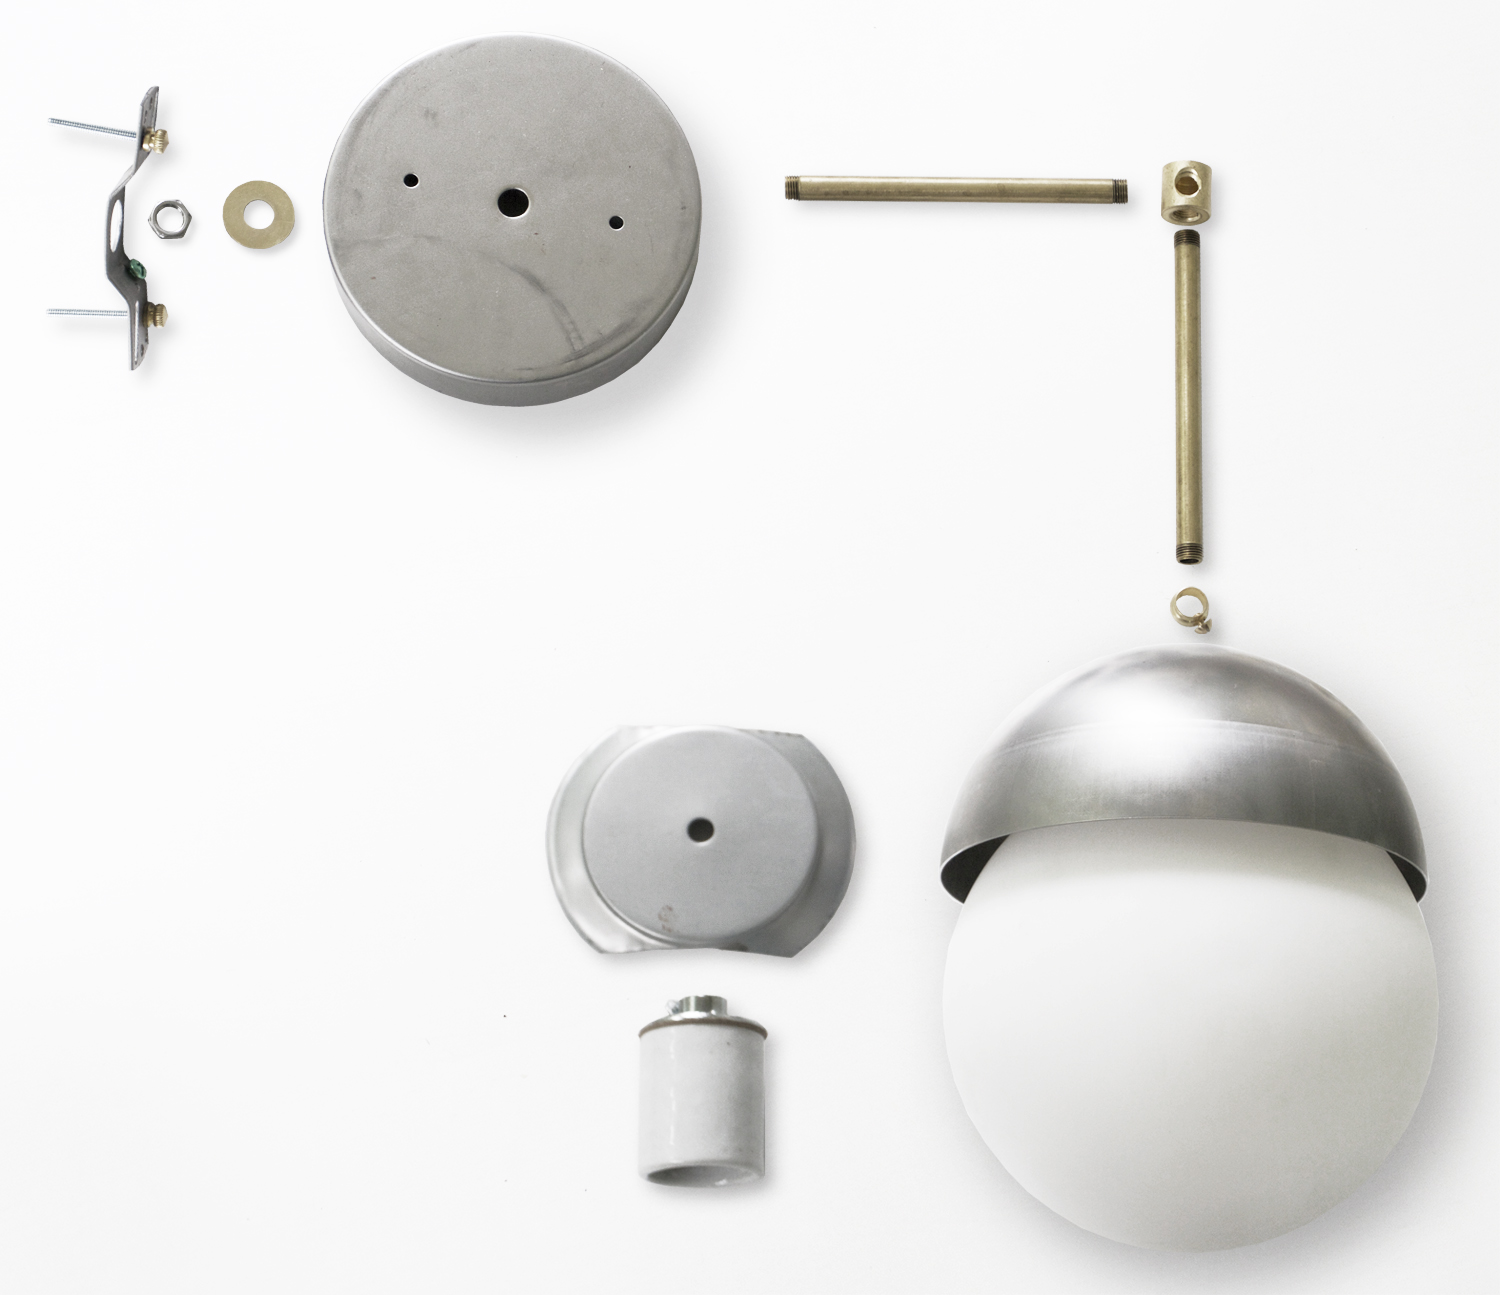 Instructions and Parts list for minimalist DIY Brass & Black Globe Light Fixture